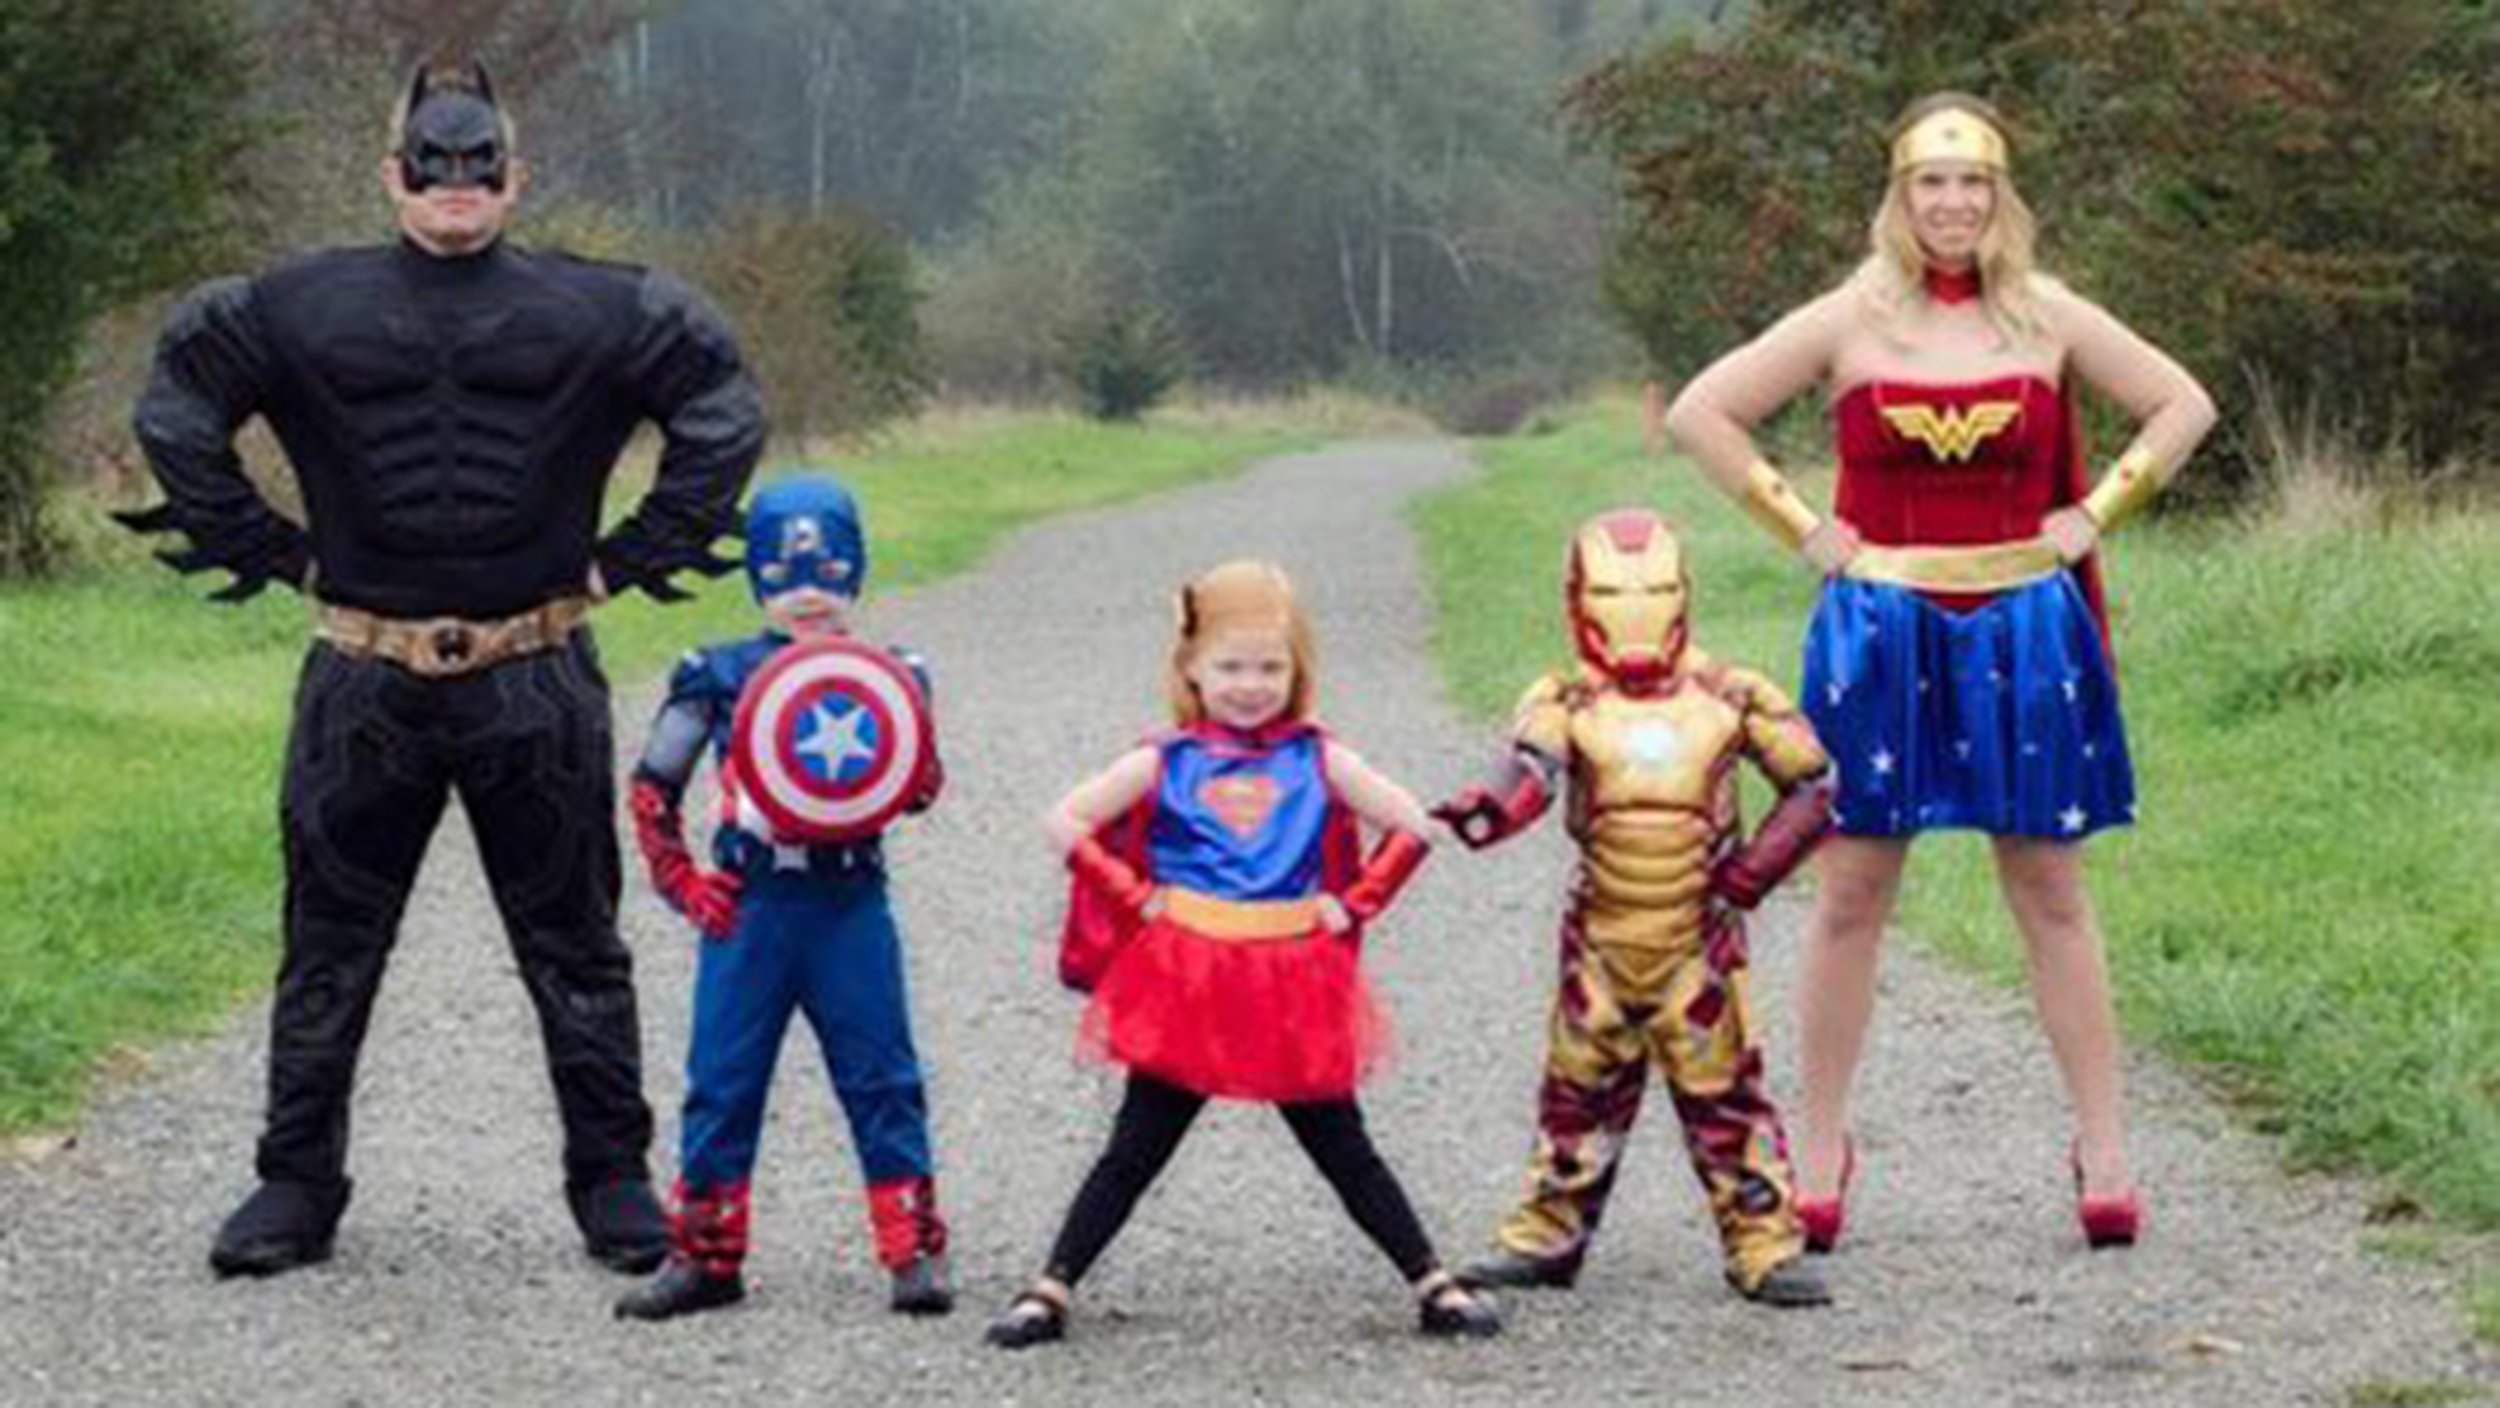 10 Unique Family Of 4 Costume Ideas 19 of the cutest family theme costumes for halloween 3 2020